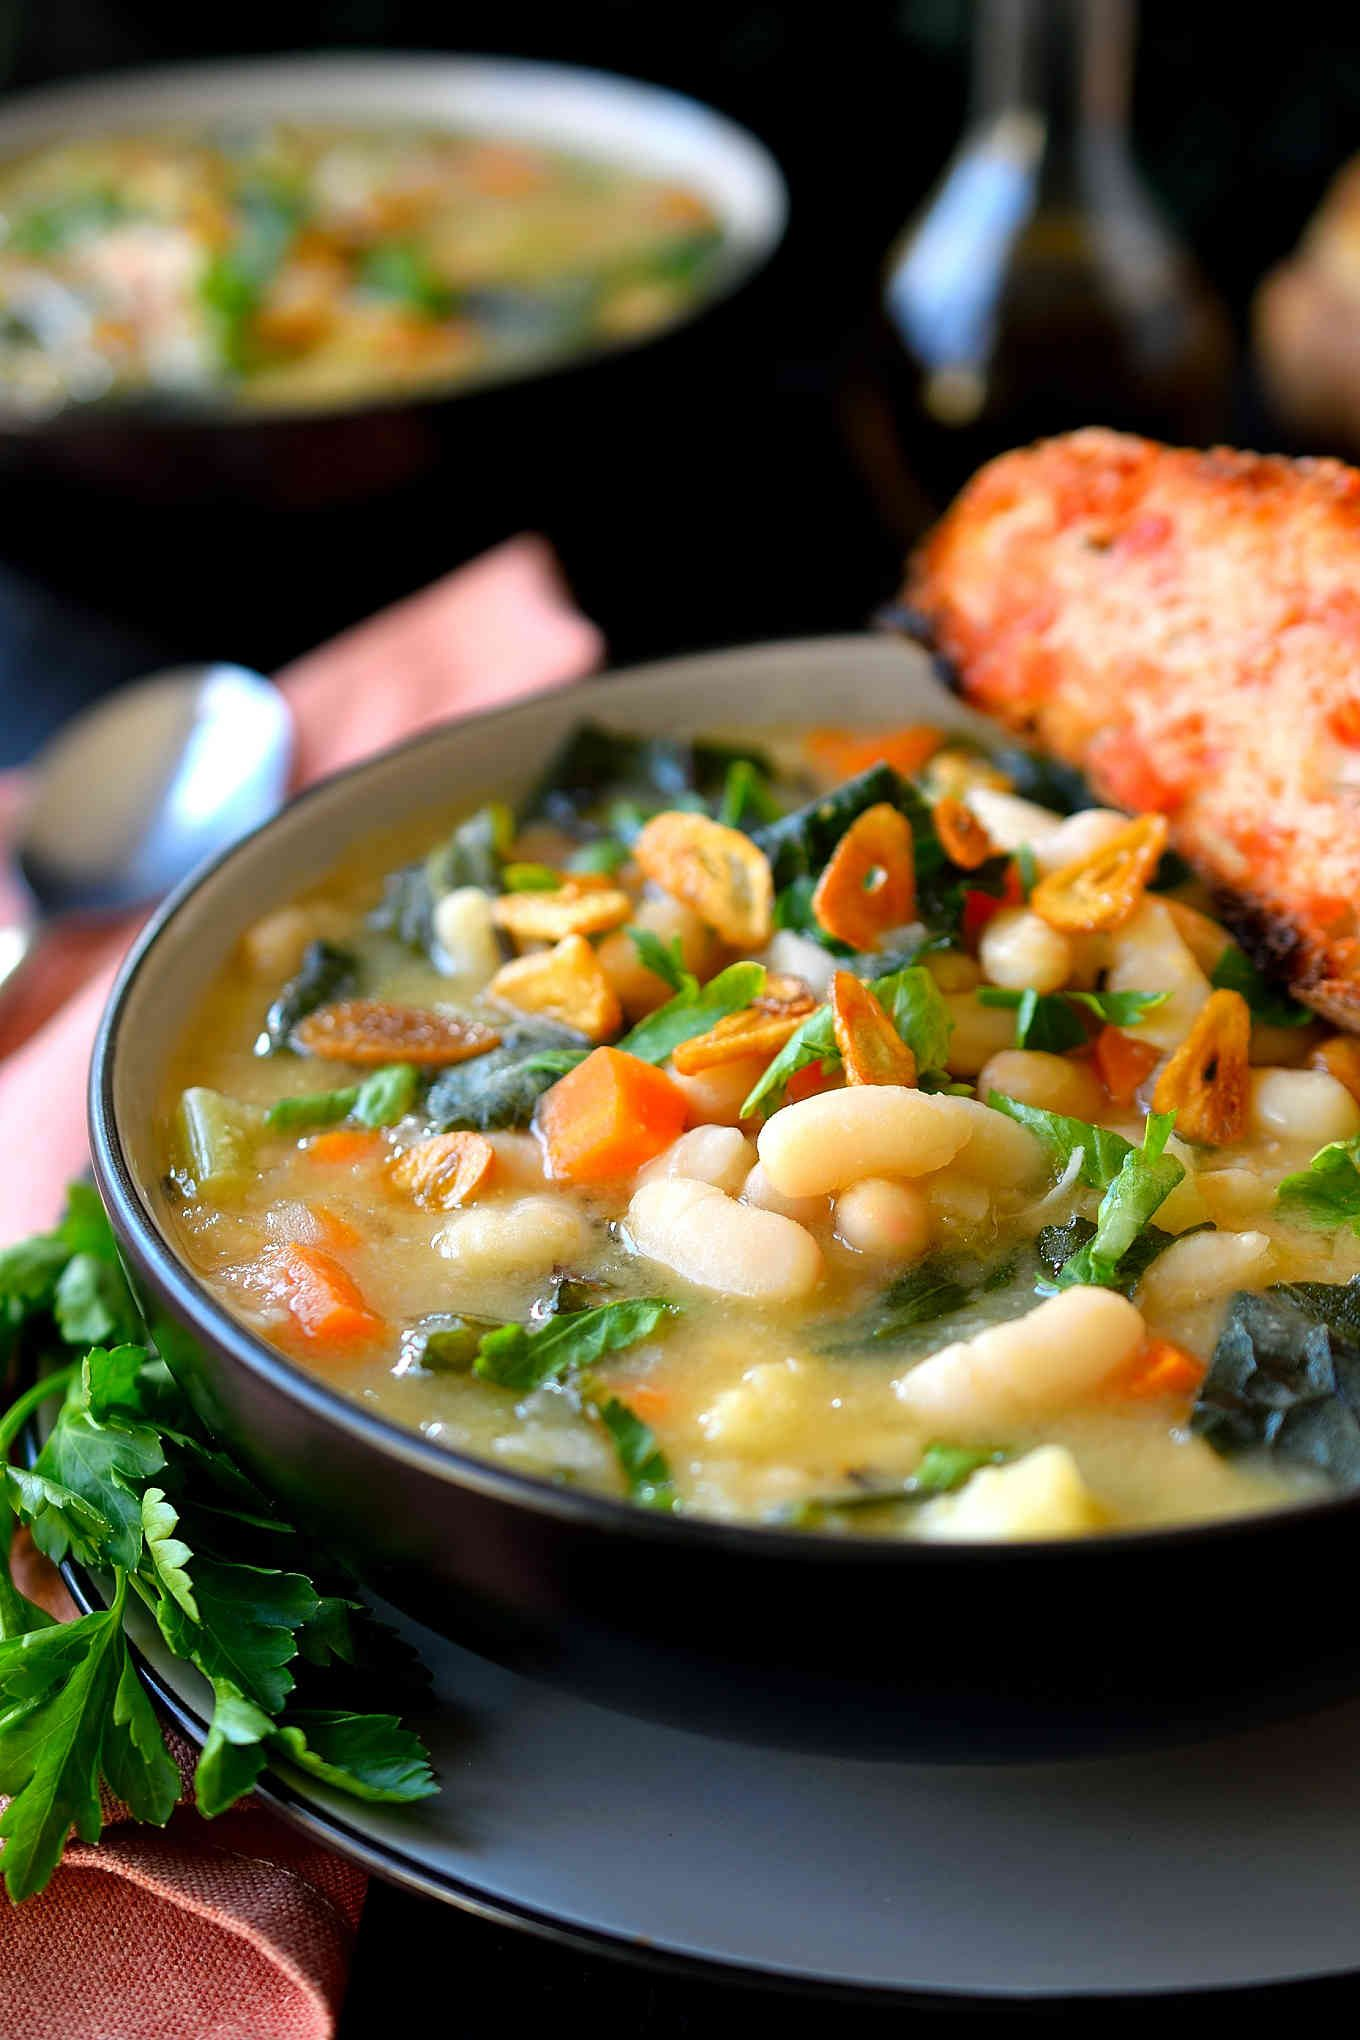 This vegan white bean and kale soup is easy to prepare in just 20 minutes, creamy and absolutely delicious! This is my version of the well-known Tuscan white bean soup with a secret ingredient in place of the parmesan to make it vegetarian- and vegan-friendly. This hearty soup is perfect for a busy weeknight dinner.